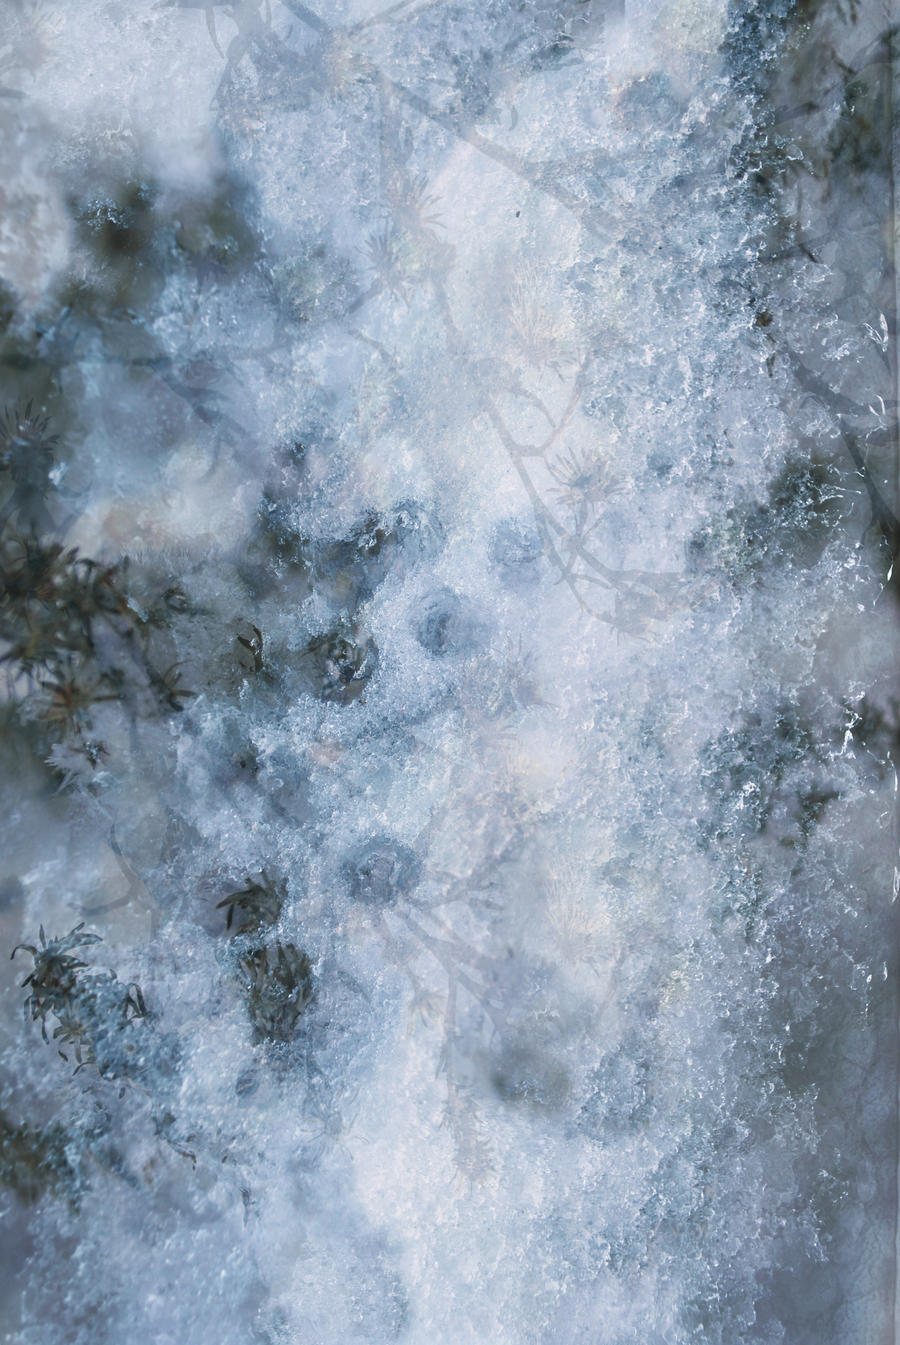 Ice and Snow Texture 1